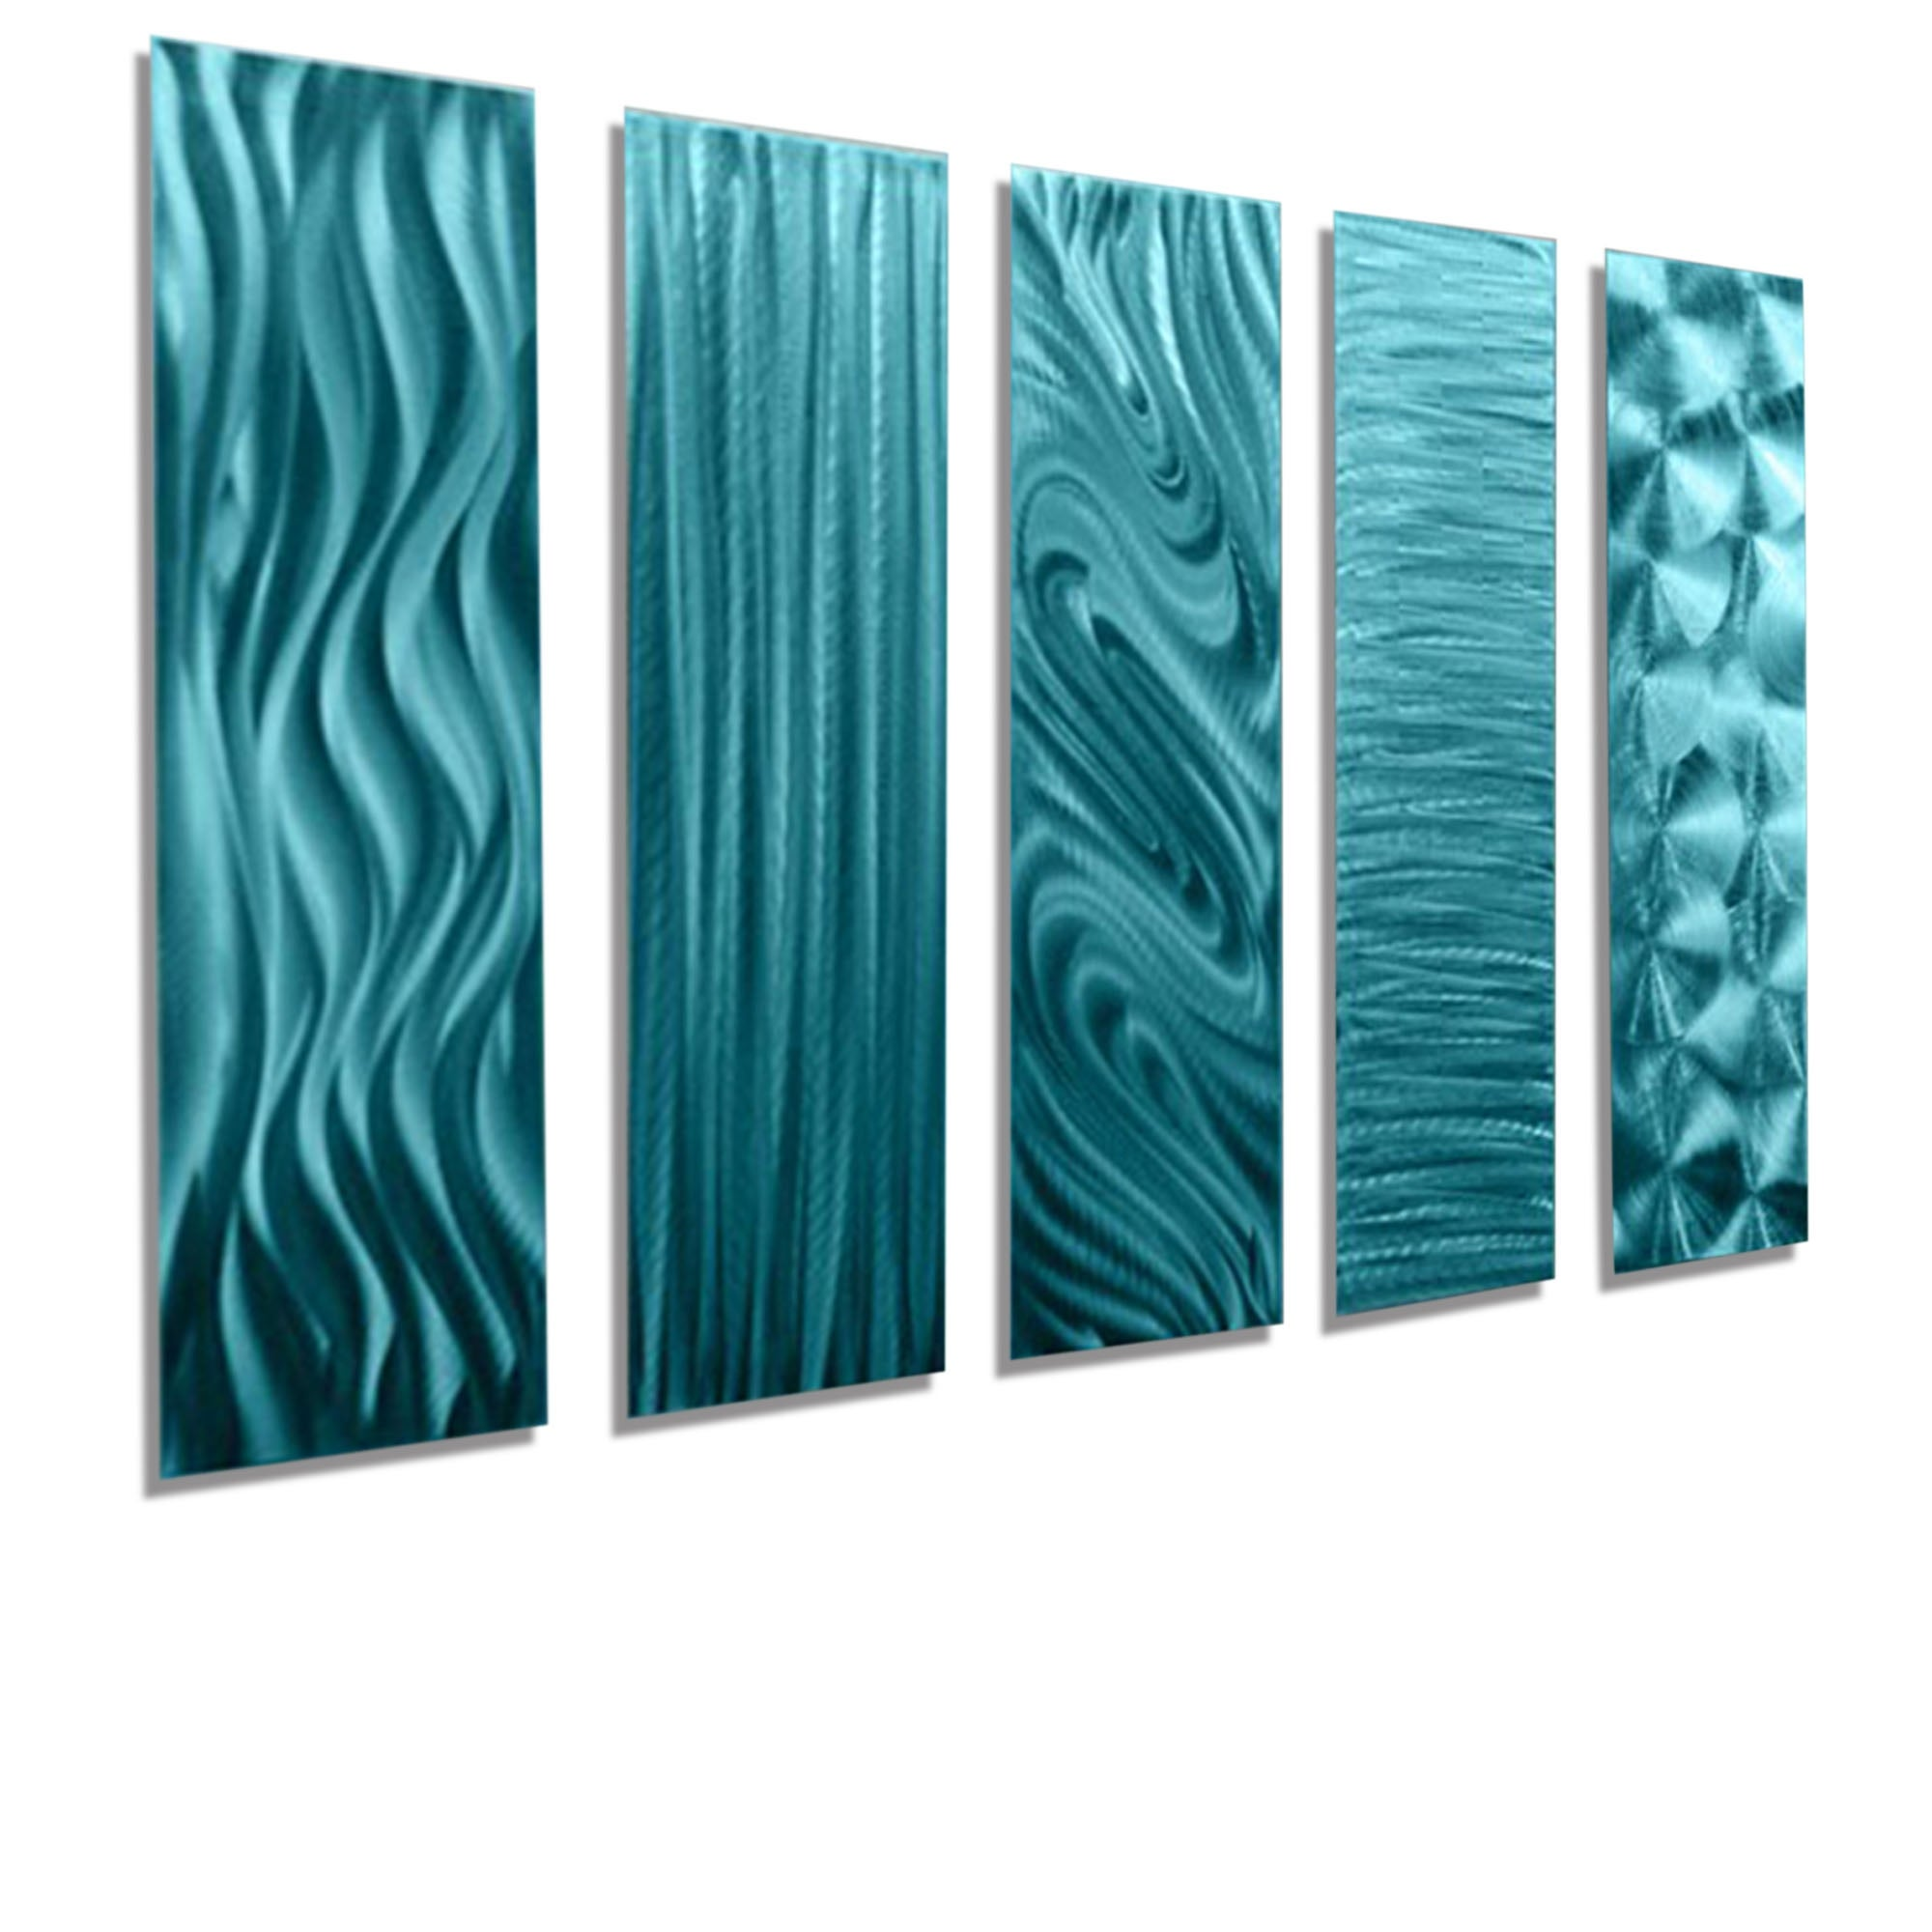 Blue Metal Wall Art Custom Statements2000 Set Of 5 Aqua Blue Metal Wall Art Accentsjon Inspiration Design